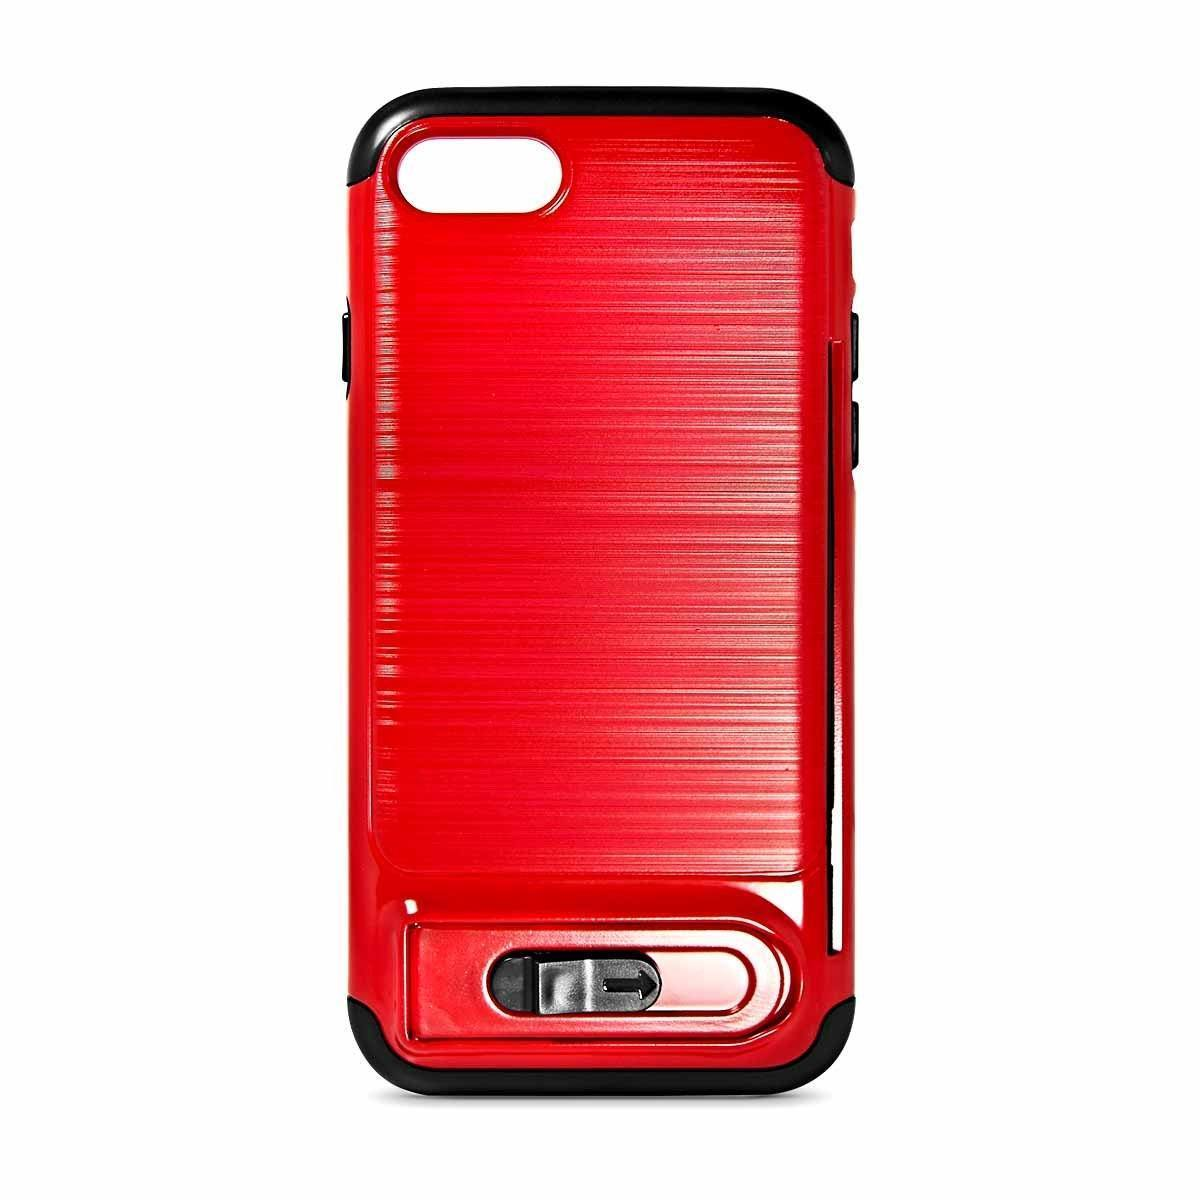 My Card Sliding Case for iPhone 6 - Red